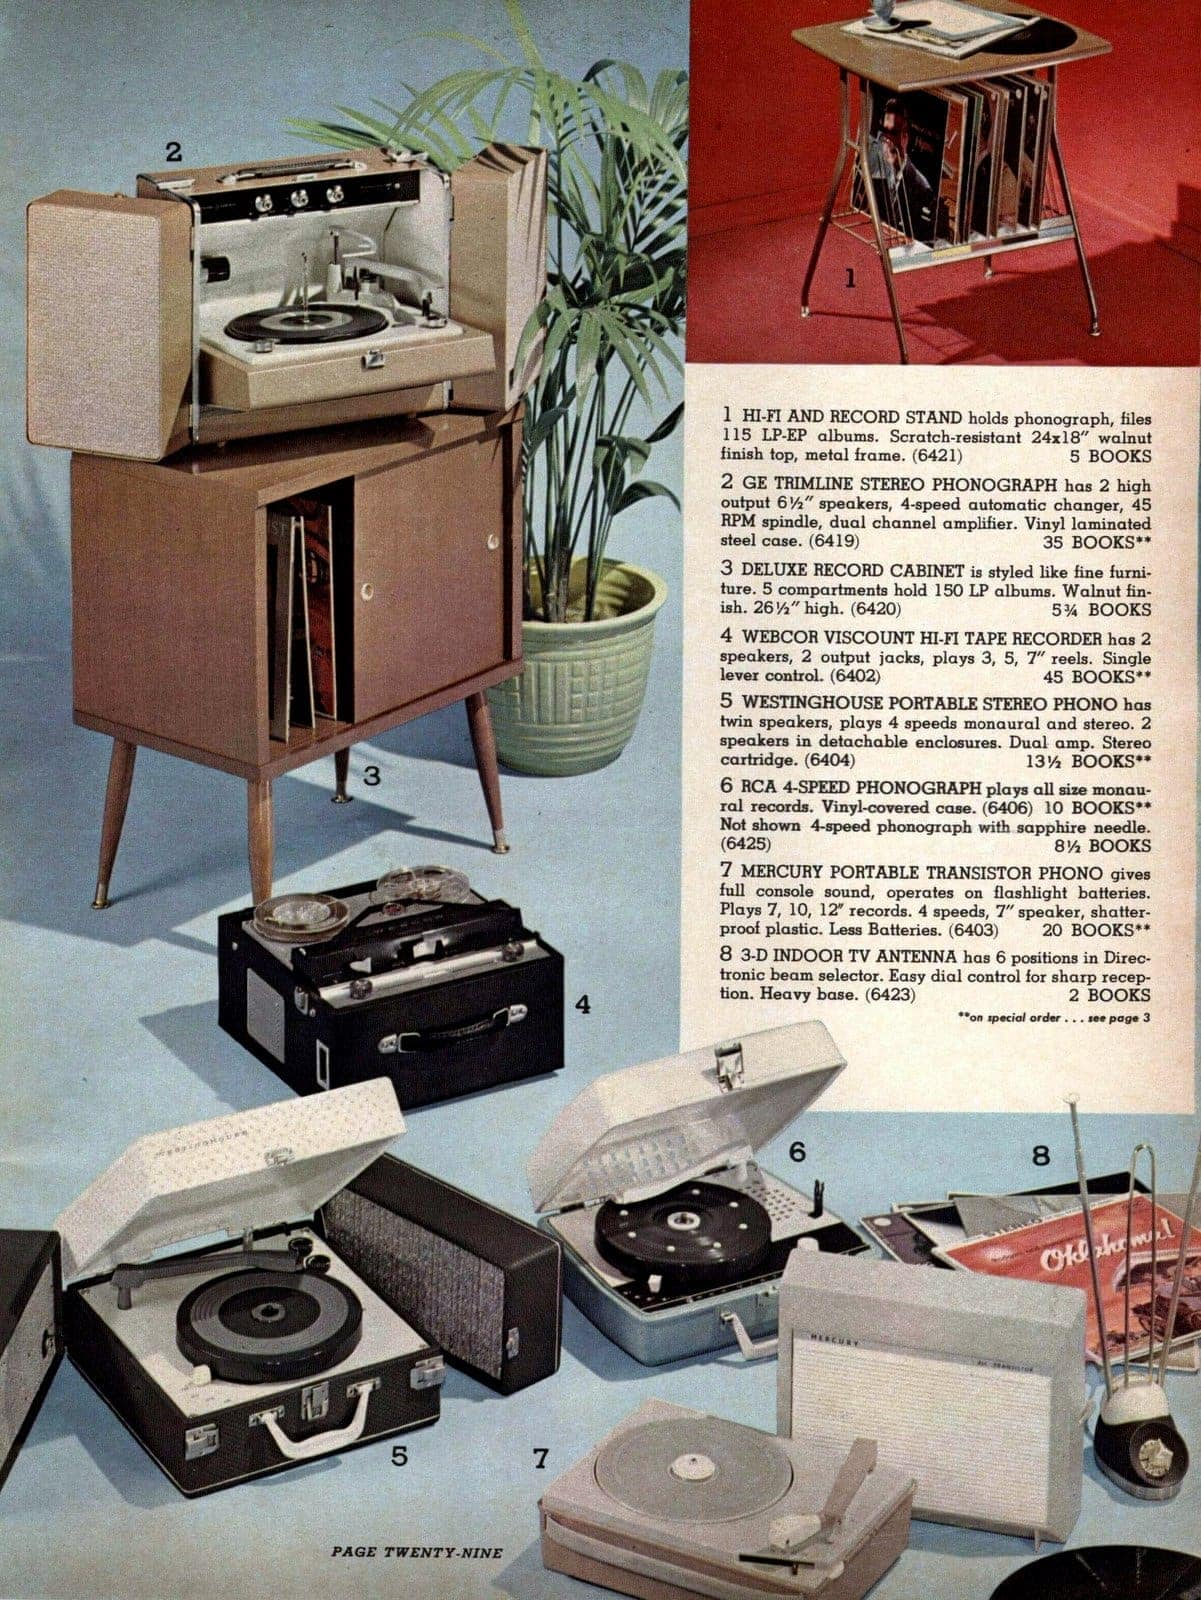 Record players, record stands, photographs and other retro AV gear